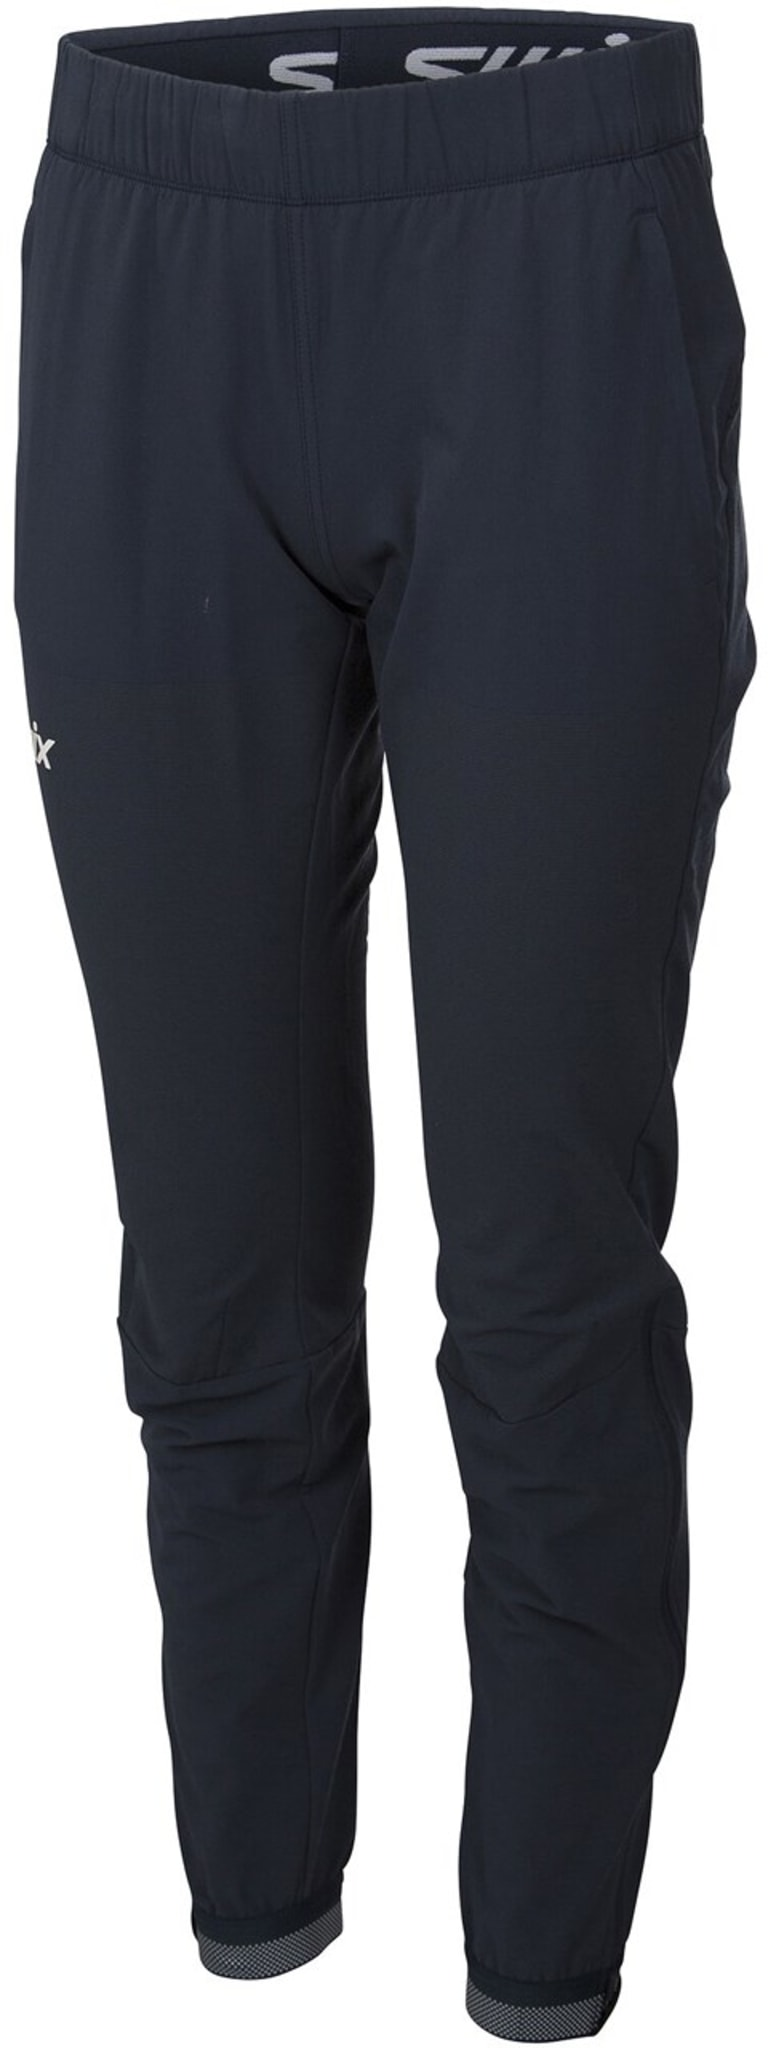 Evolution Softshield Pants W